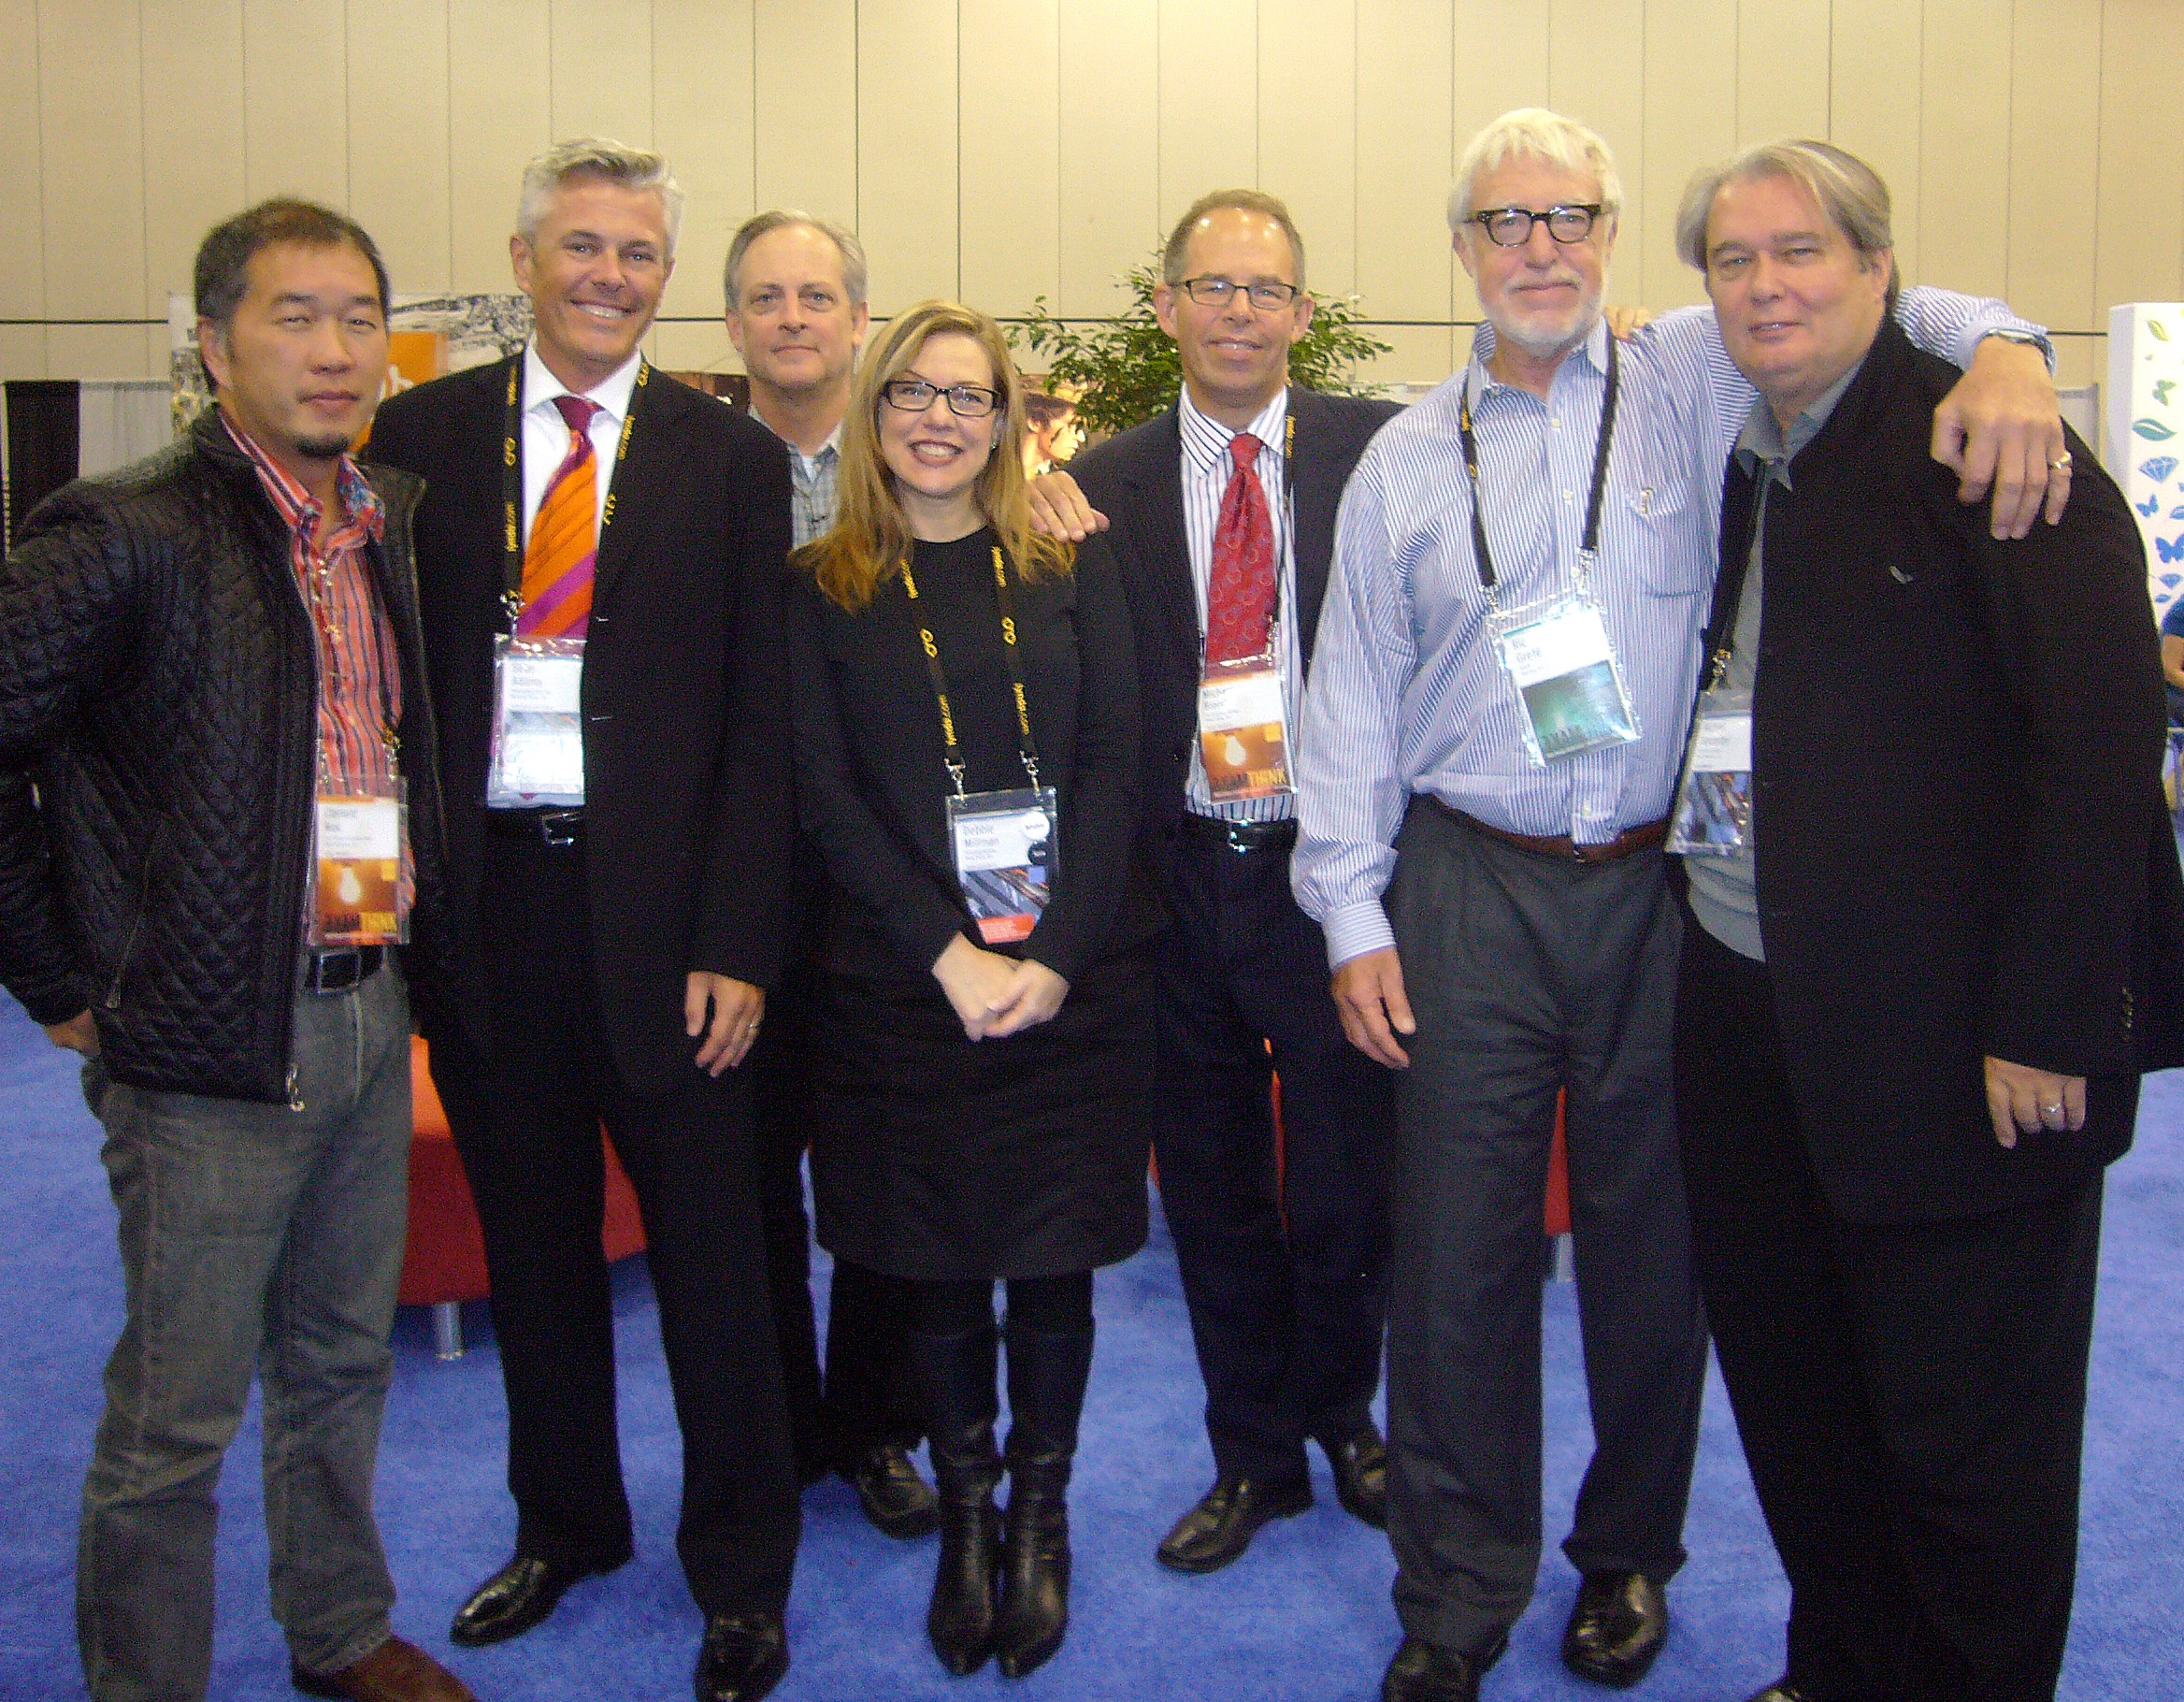 AIGA Presidents, L-R: Clement Mok, Sean Adams, Bill Drenttel, Debbie Millman, Michael Bierut, Ric Grefé (Executive Director), Michael Vanderbyl, 2009